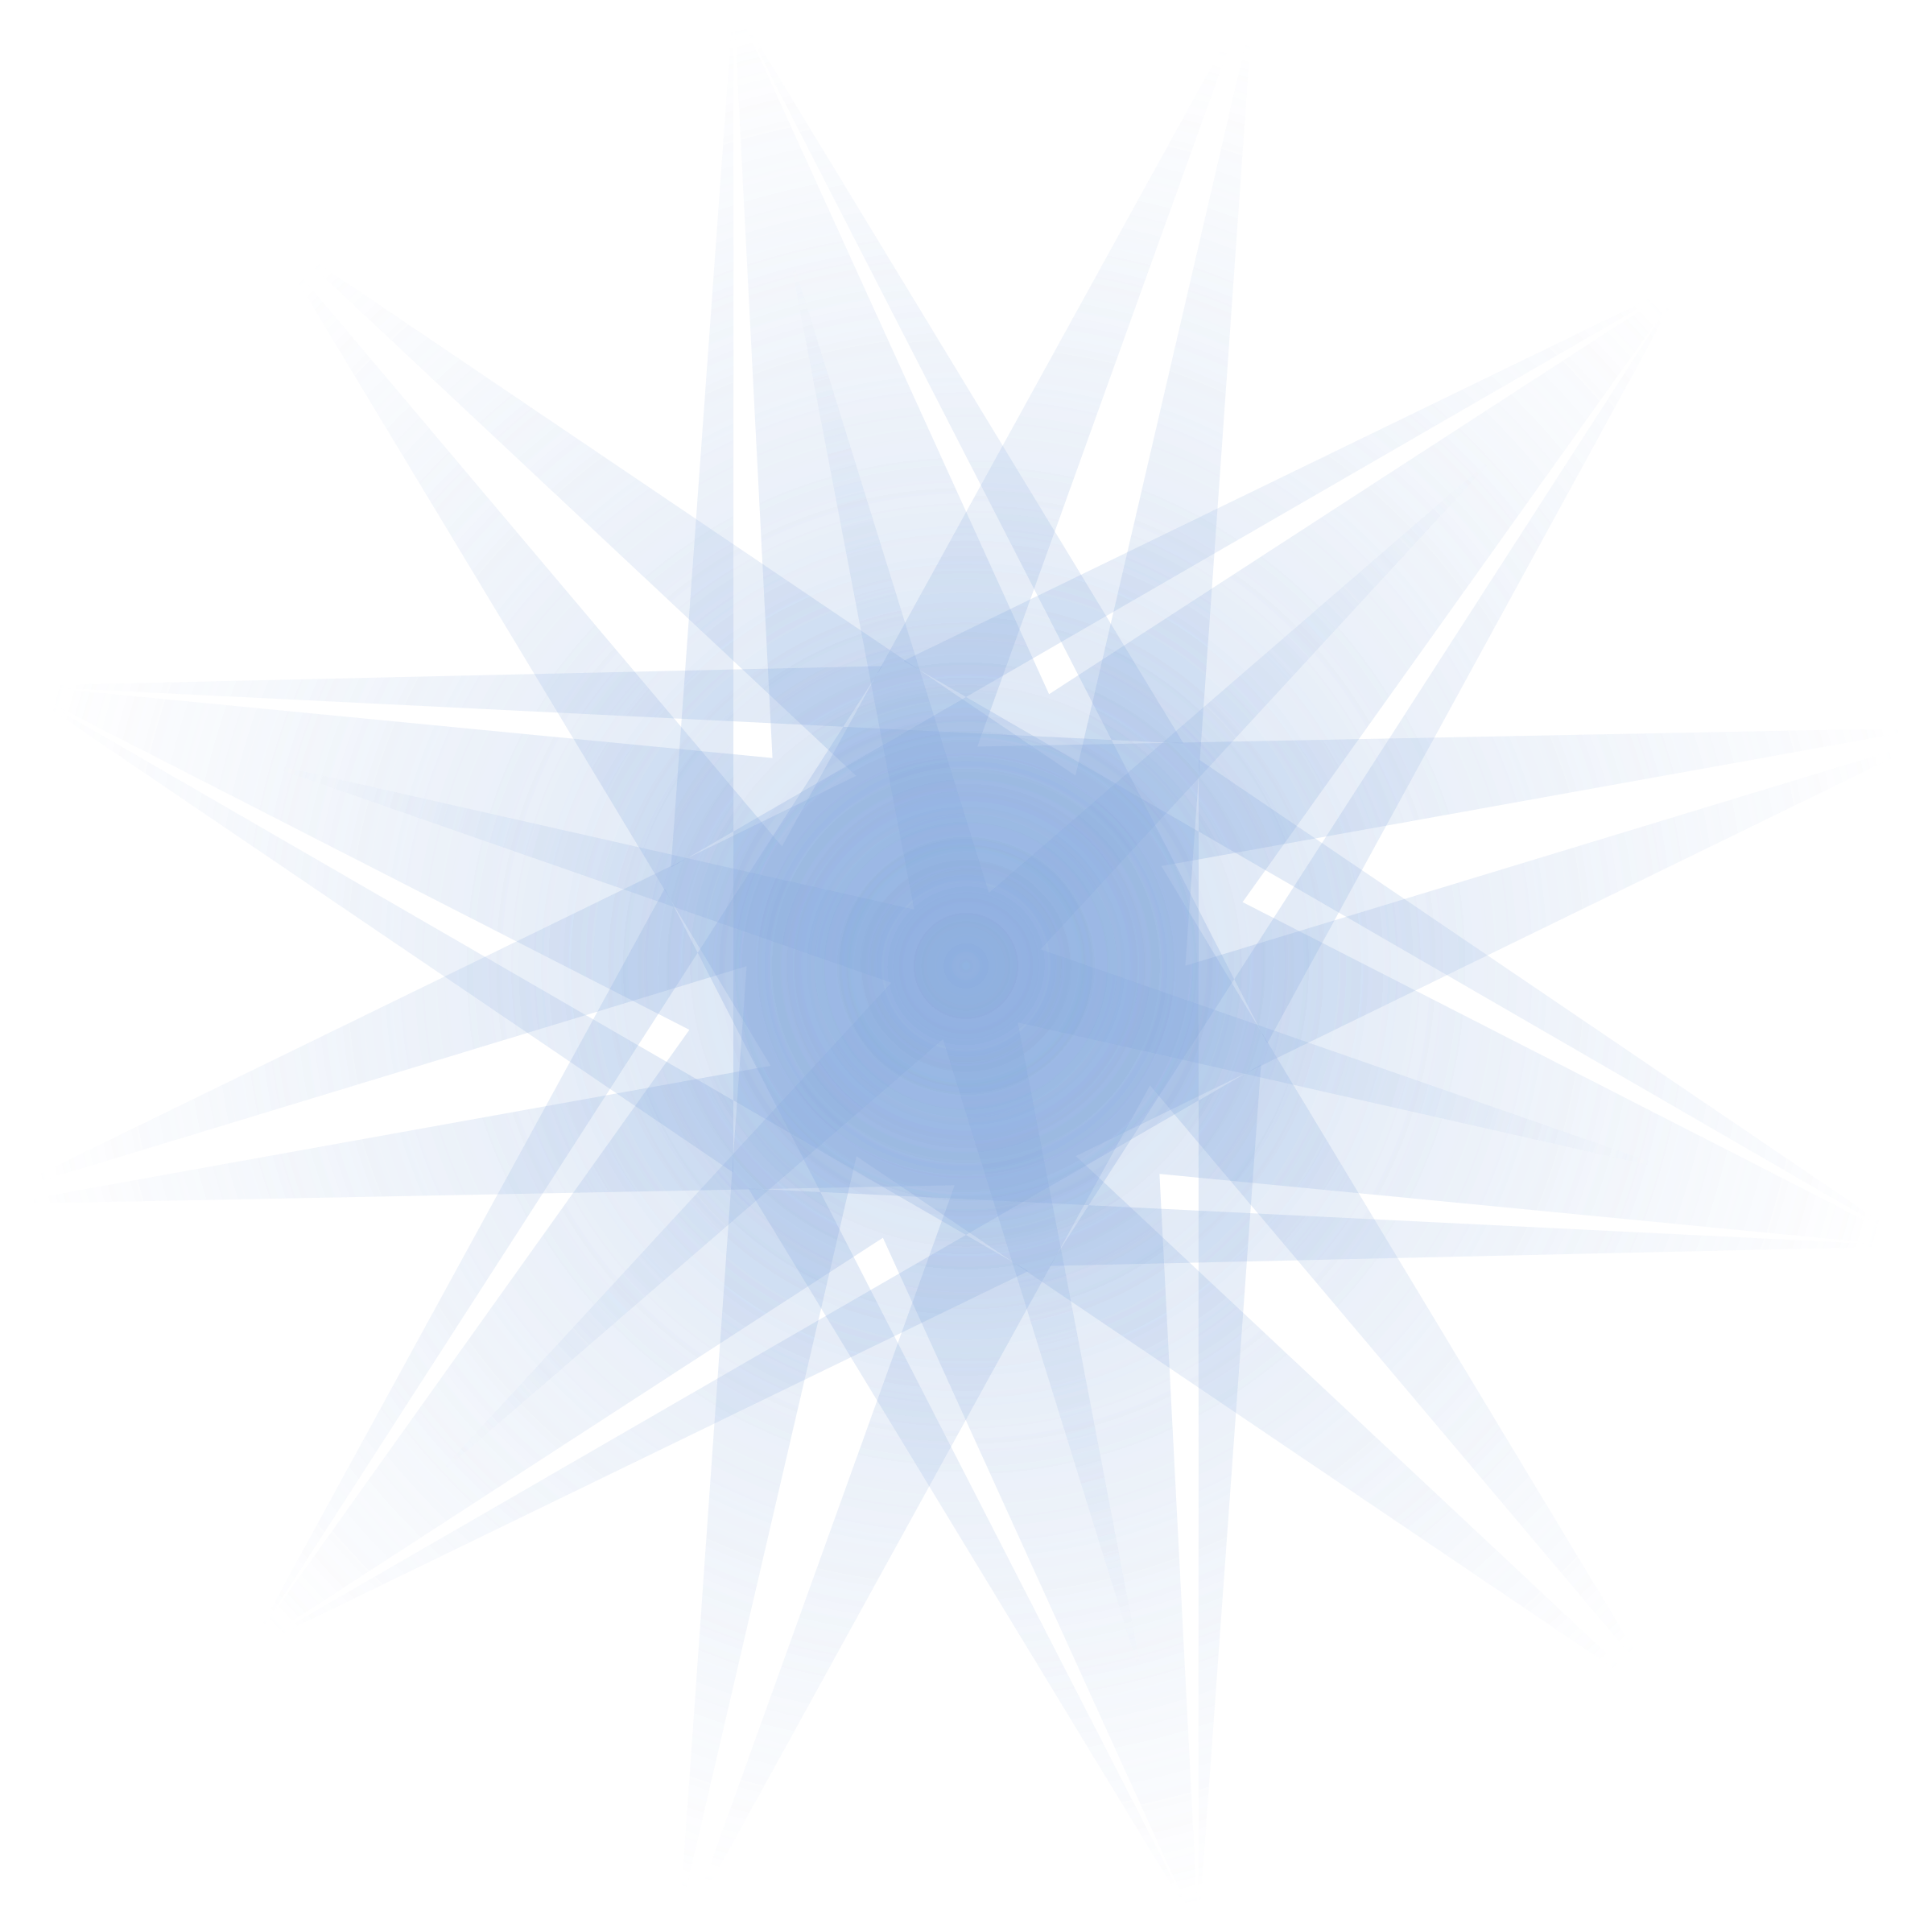 Abstract snowflake clipart jpg download Clipart - Snowflake jpg download